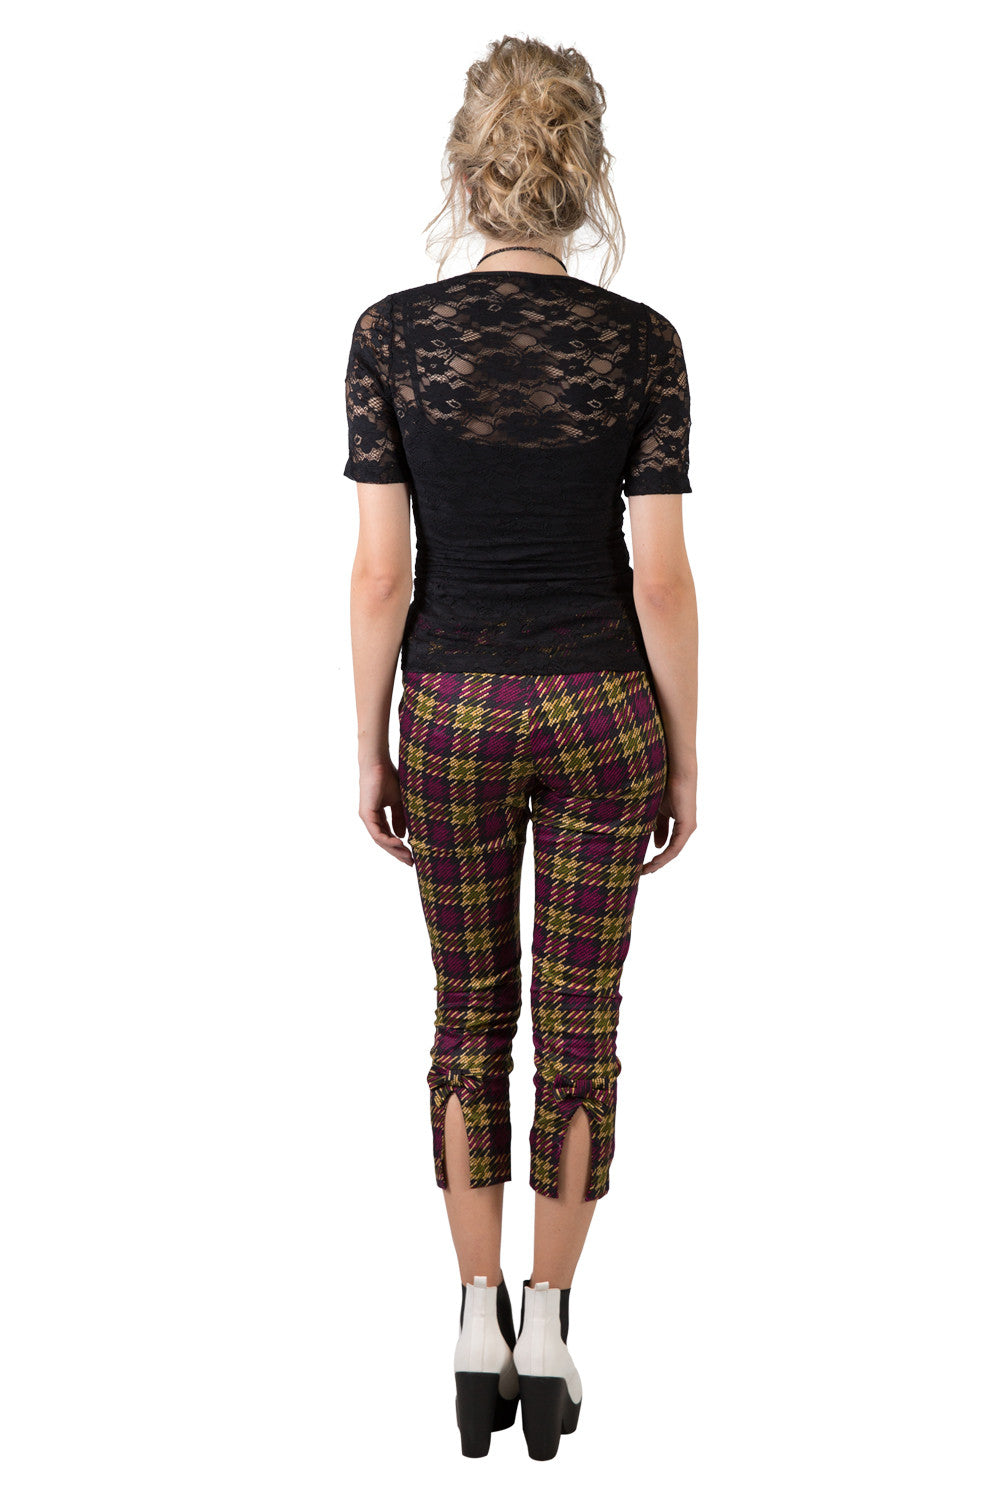 Orbit Jen Pant | Pretty Designer Pants | Annah Stretton